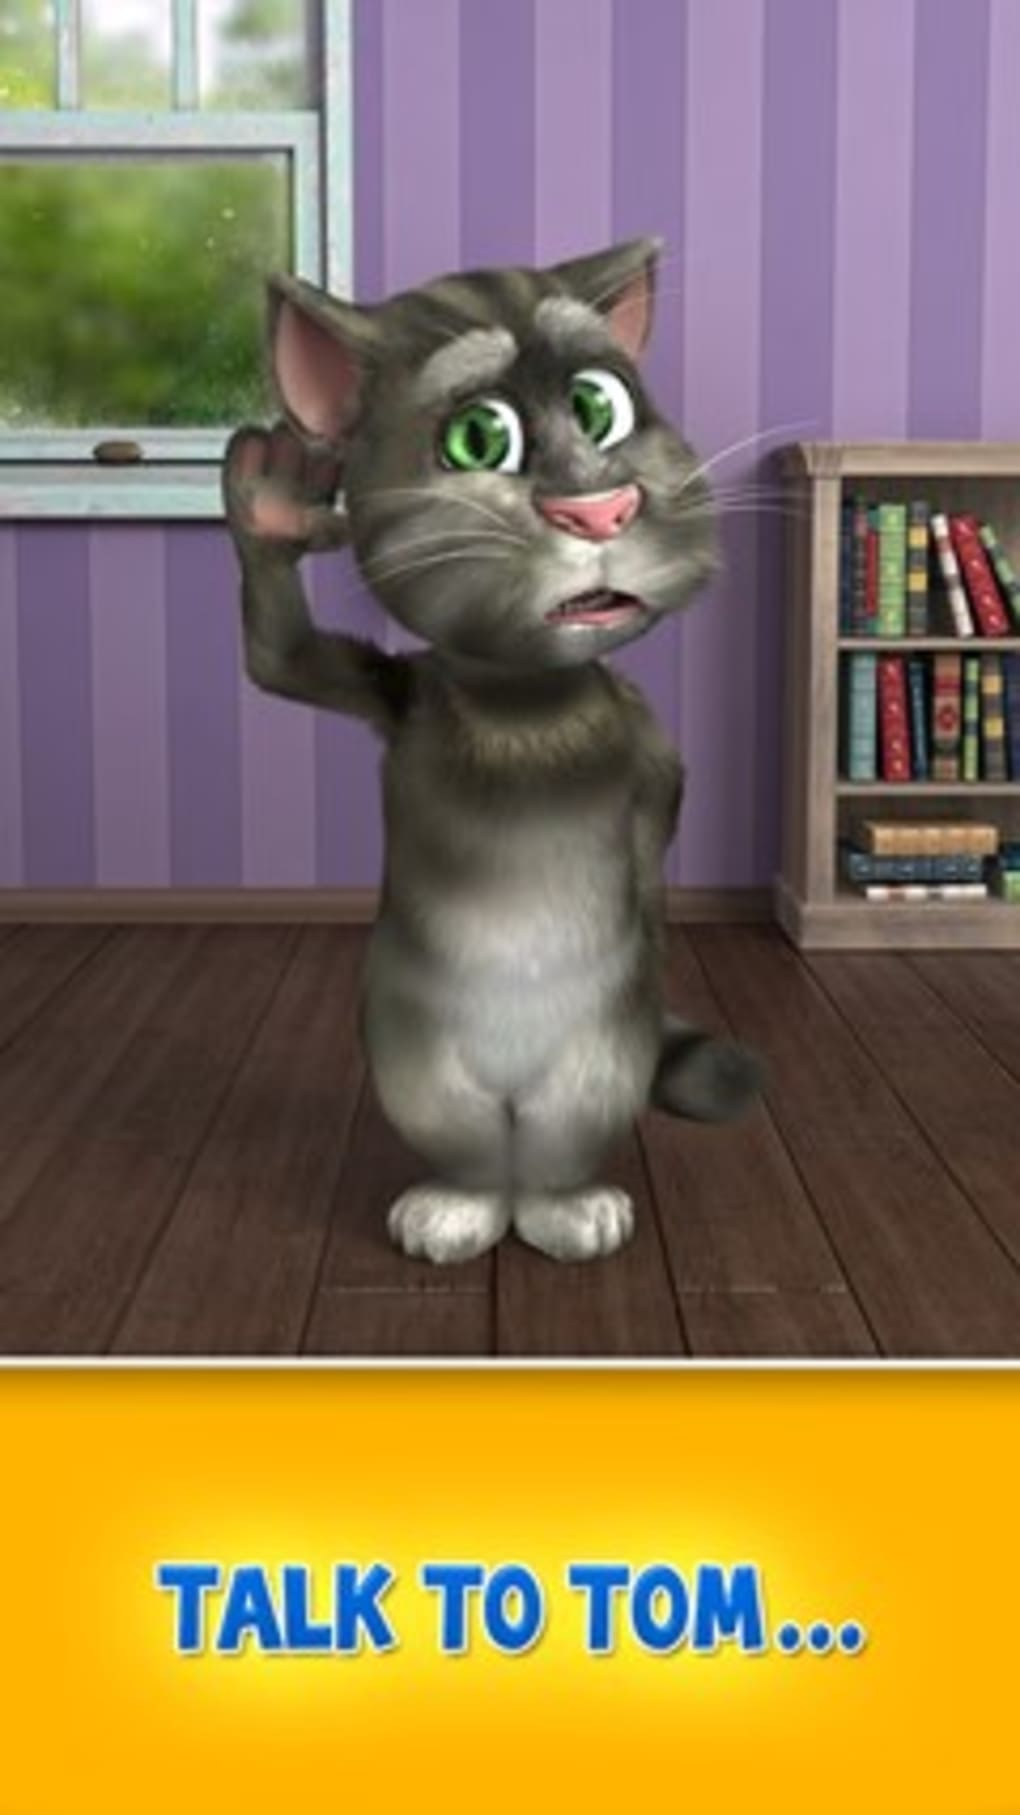 talking tom cat 2 download. Black Bedroom Furniture Sets. Home Design Ideas